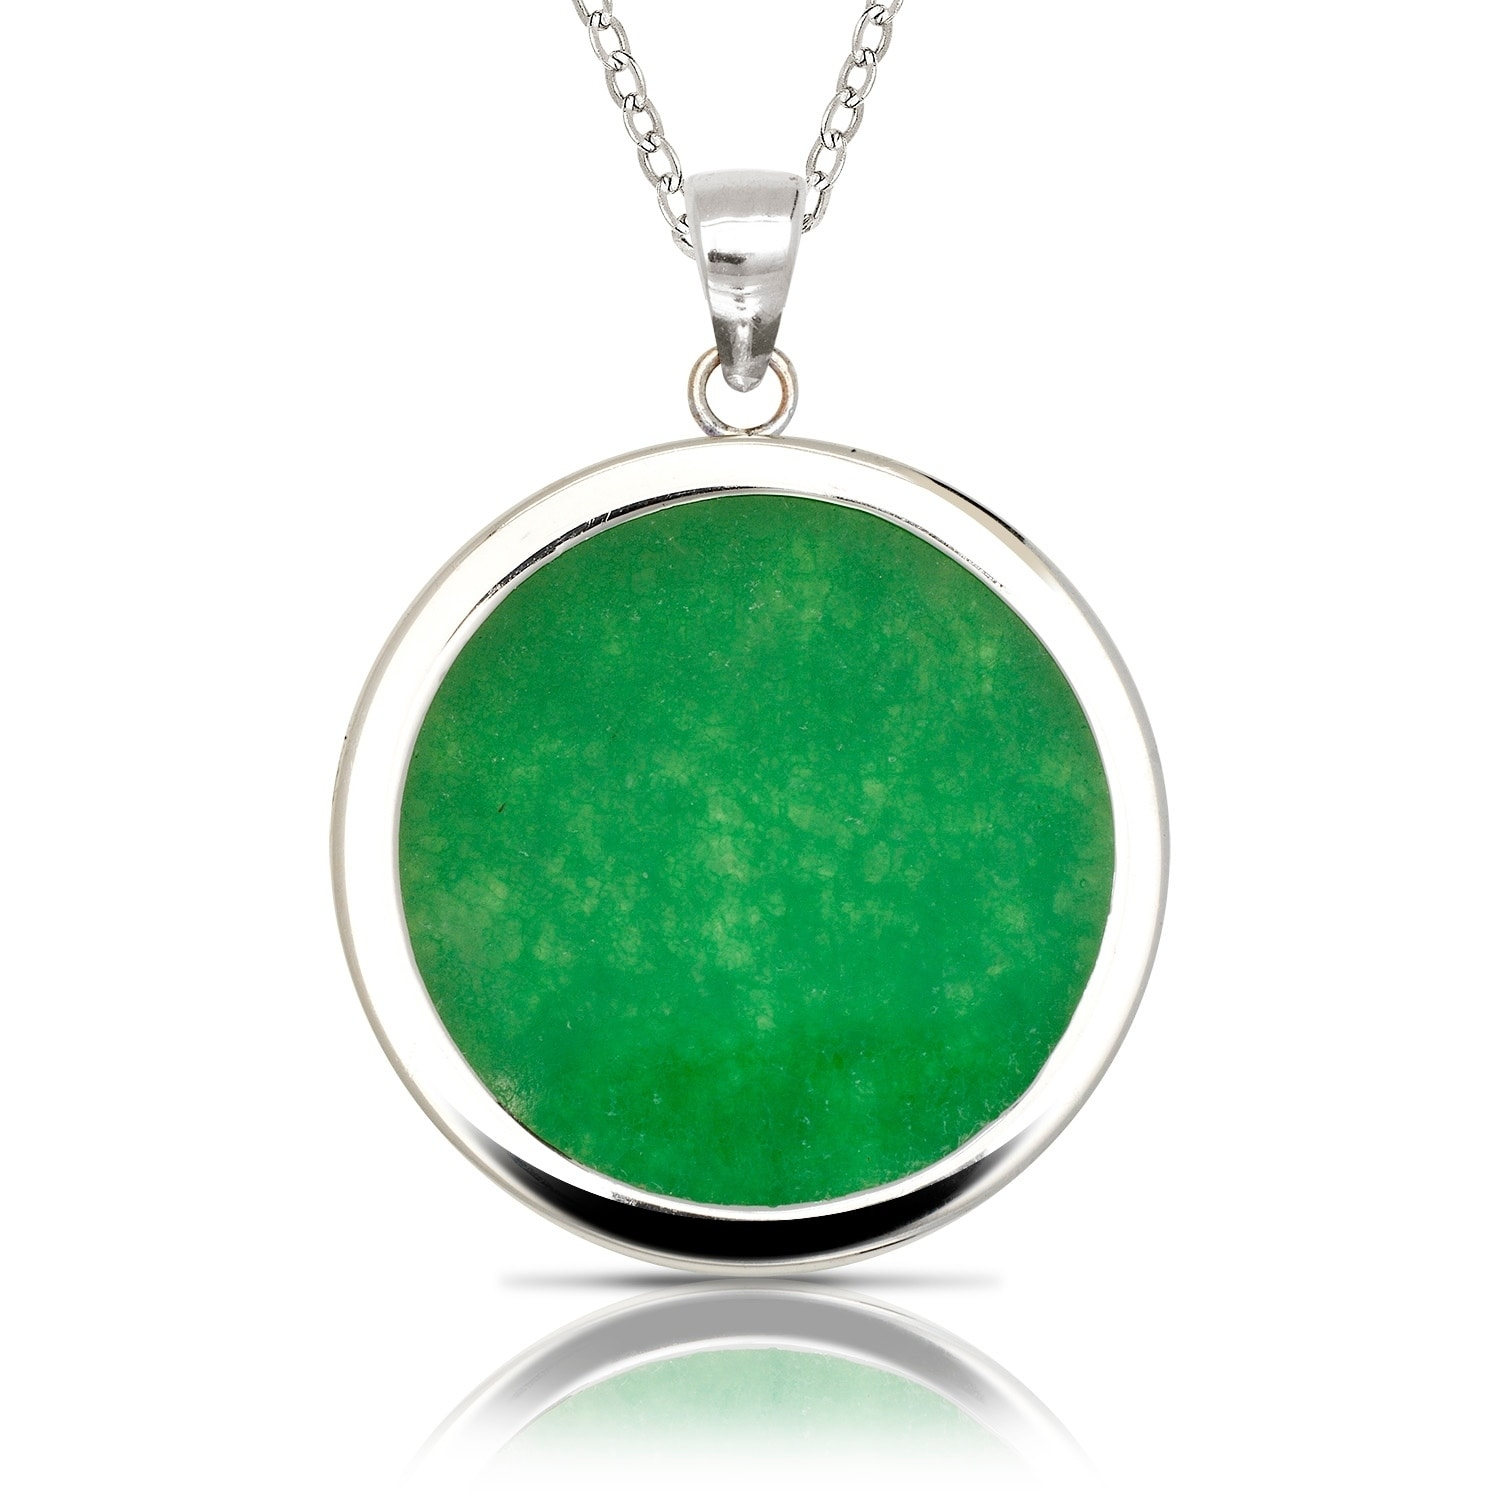 jewels collections silver products moon necklace necklaces green greenonyx mery my onyx